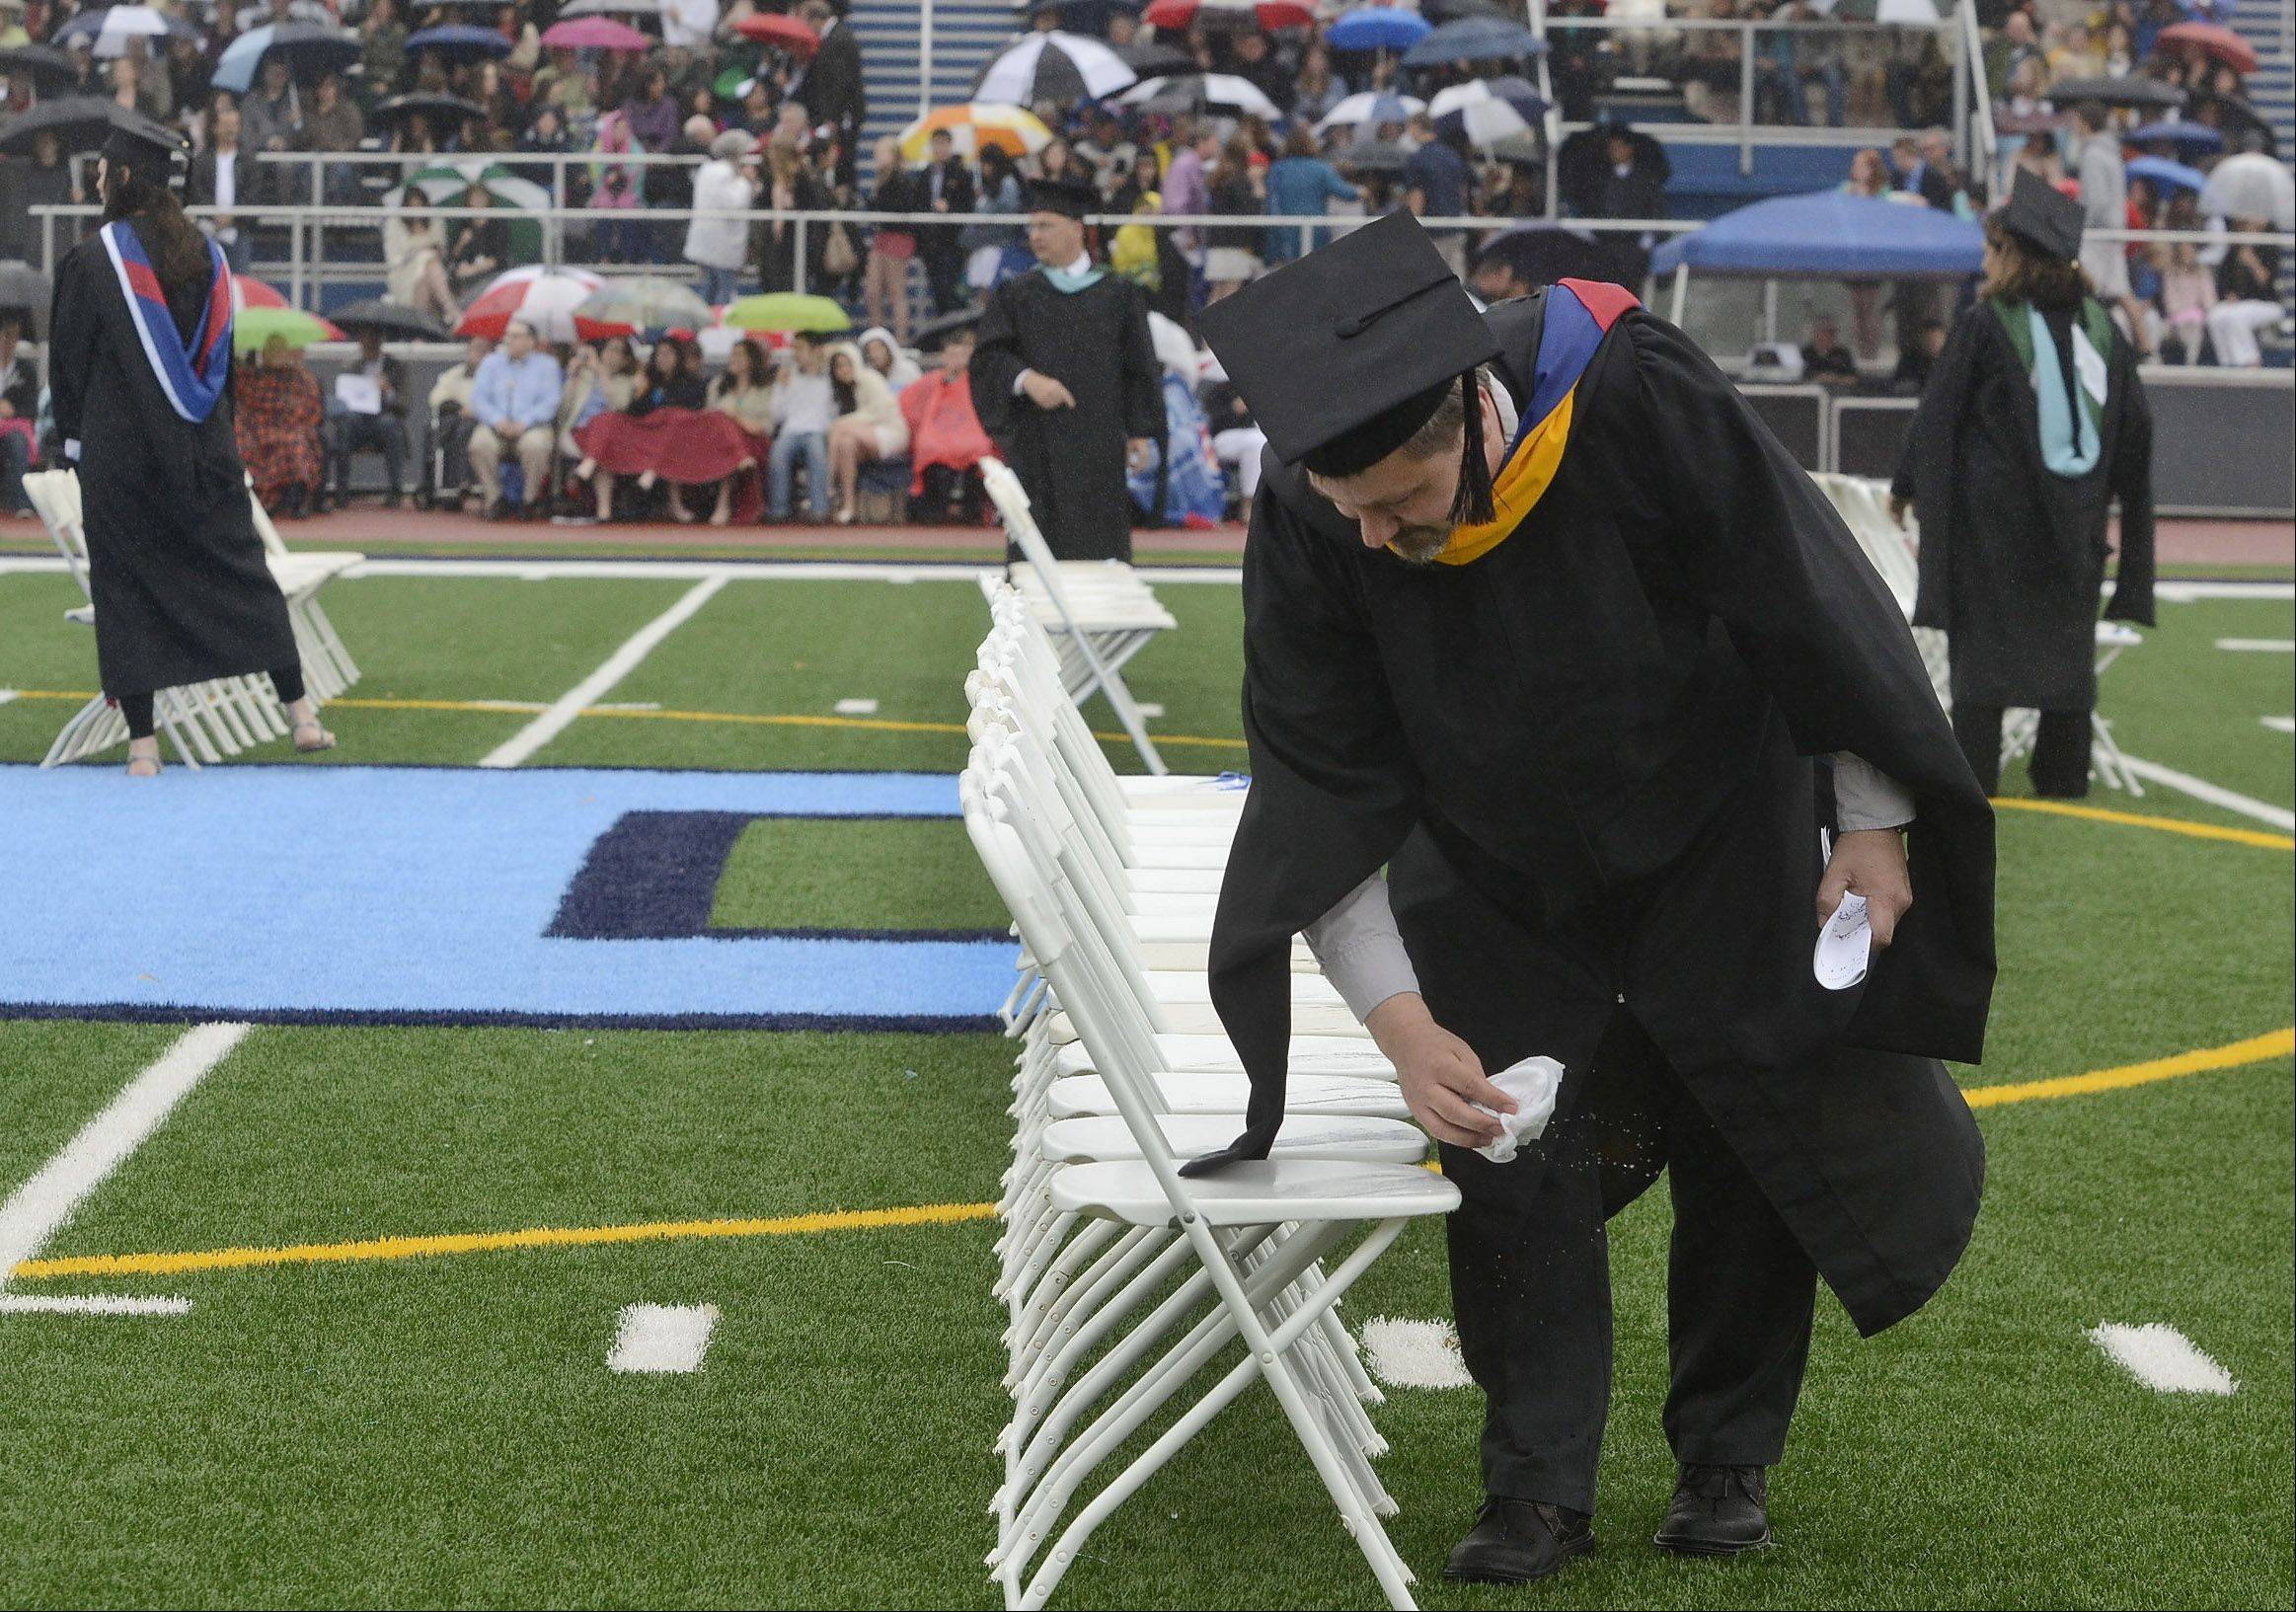 Math teacher Michael Grasse wipes down the seats with other teachers just before the graduates enter the wet football stadium during a damp Prospect High School graduation.